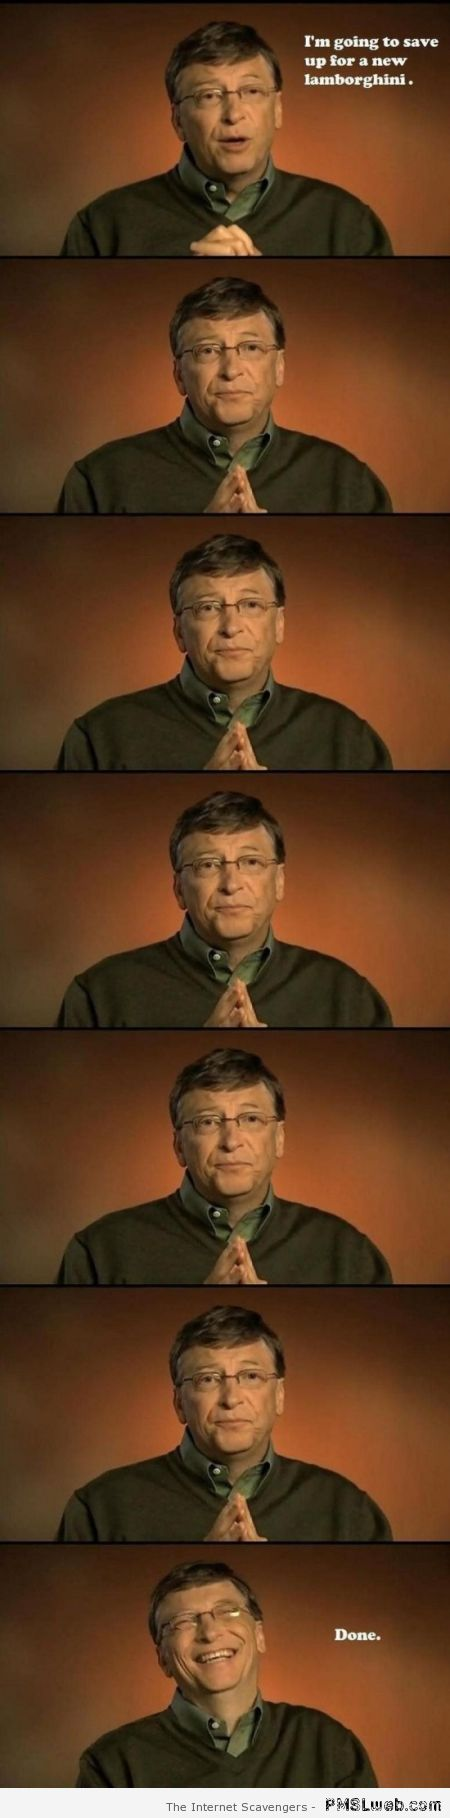 Bill Gates wants a Lamborghini at PMSLweb.com